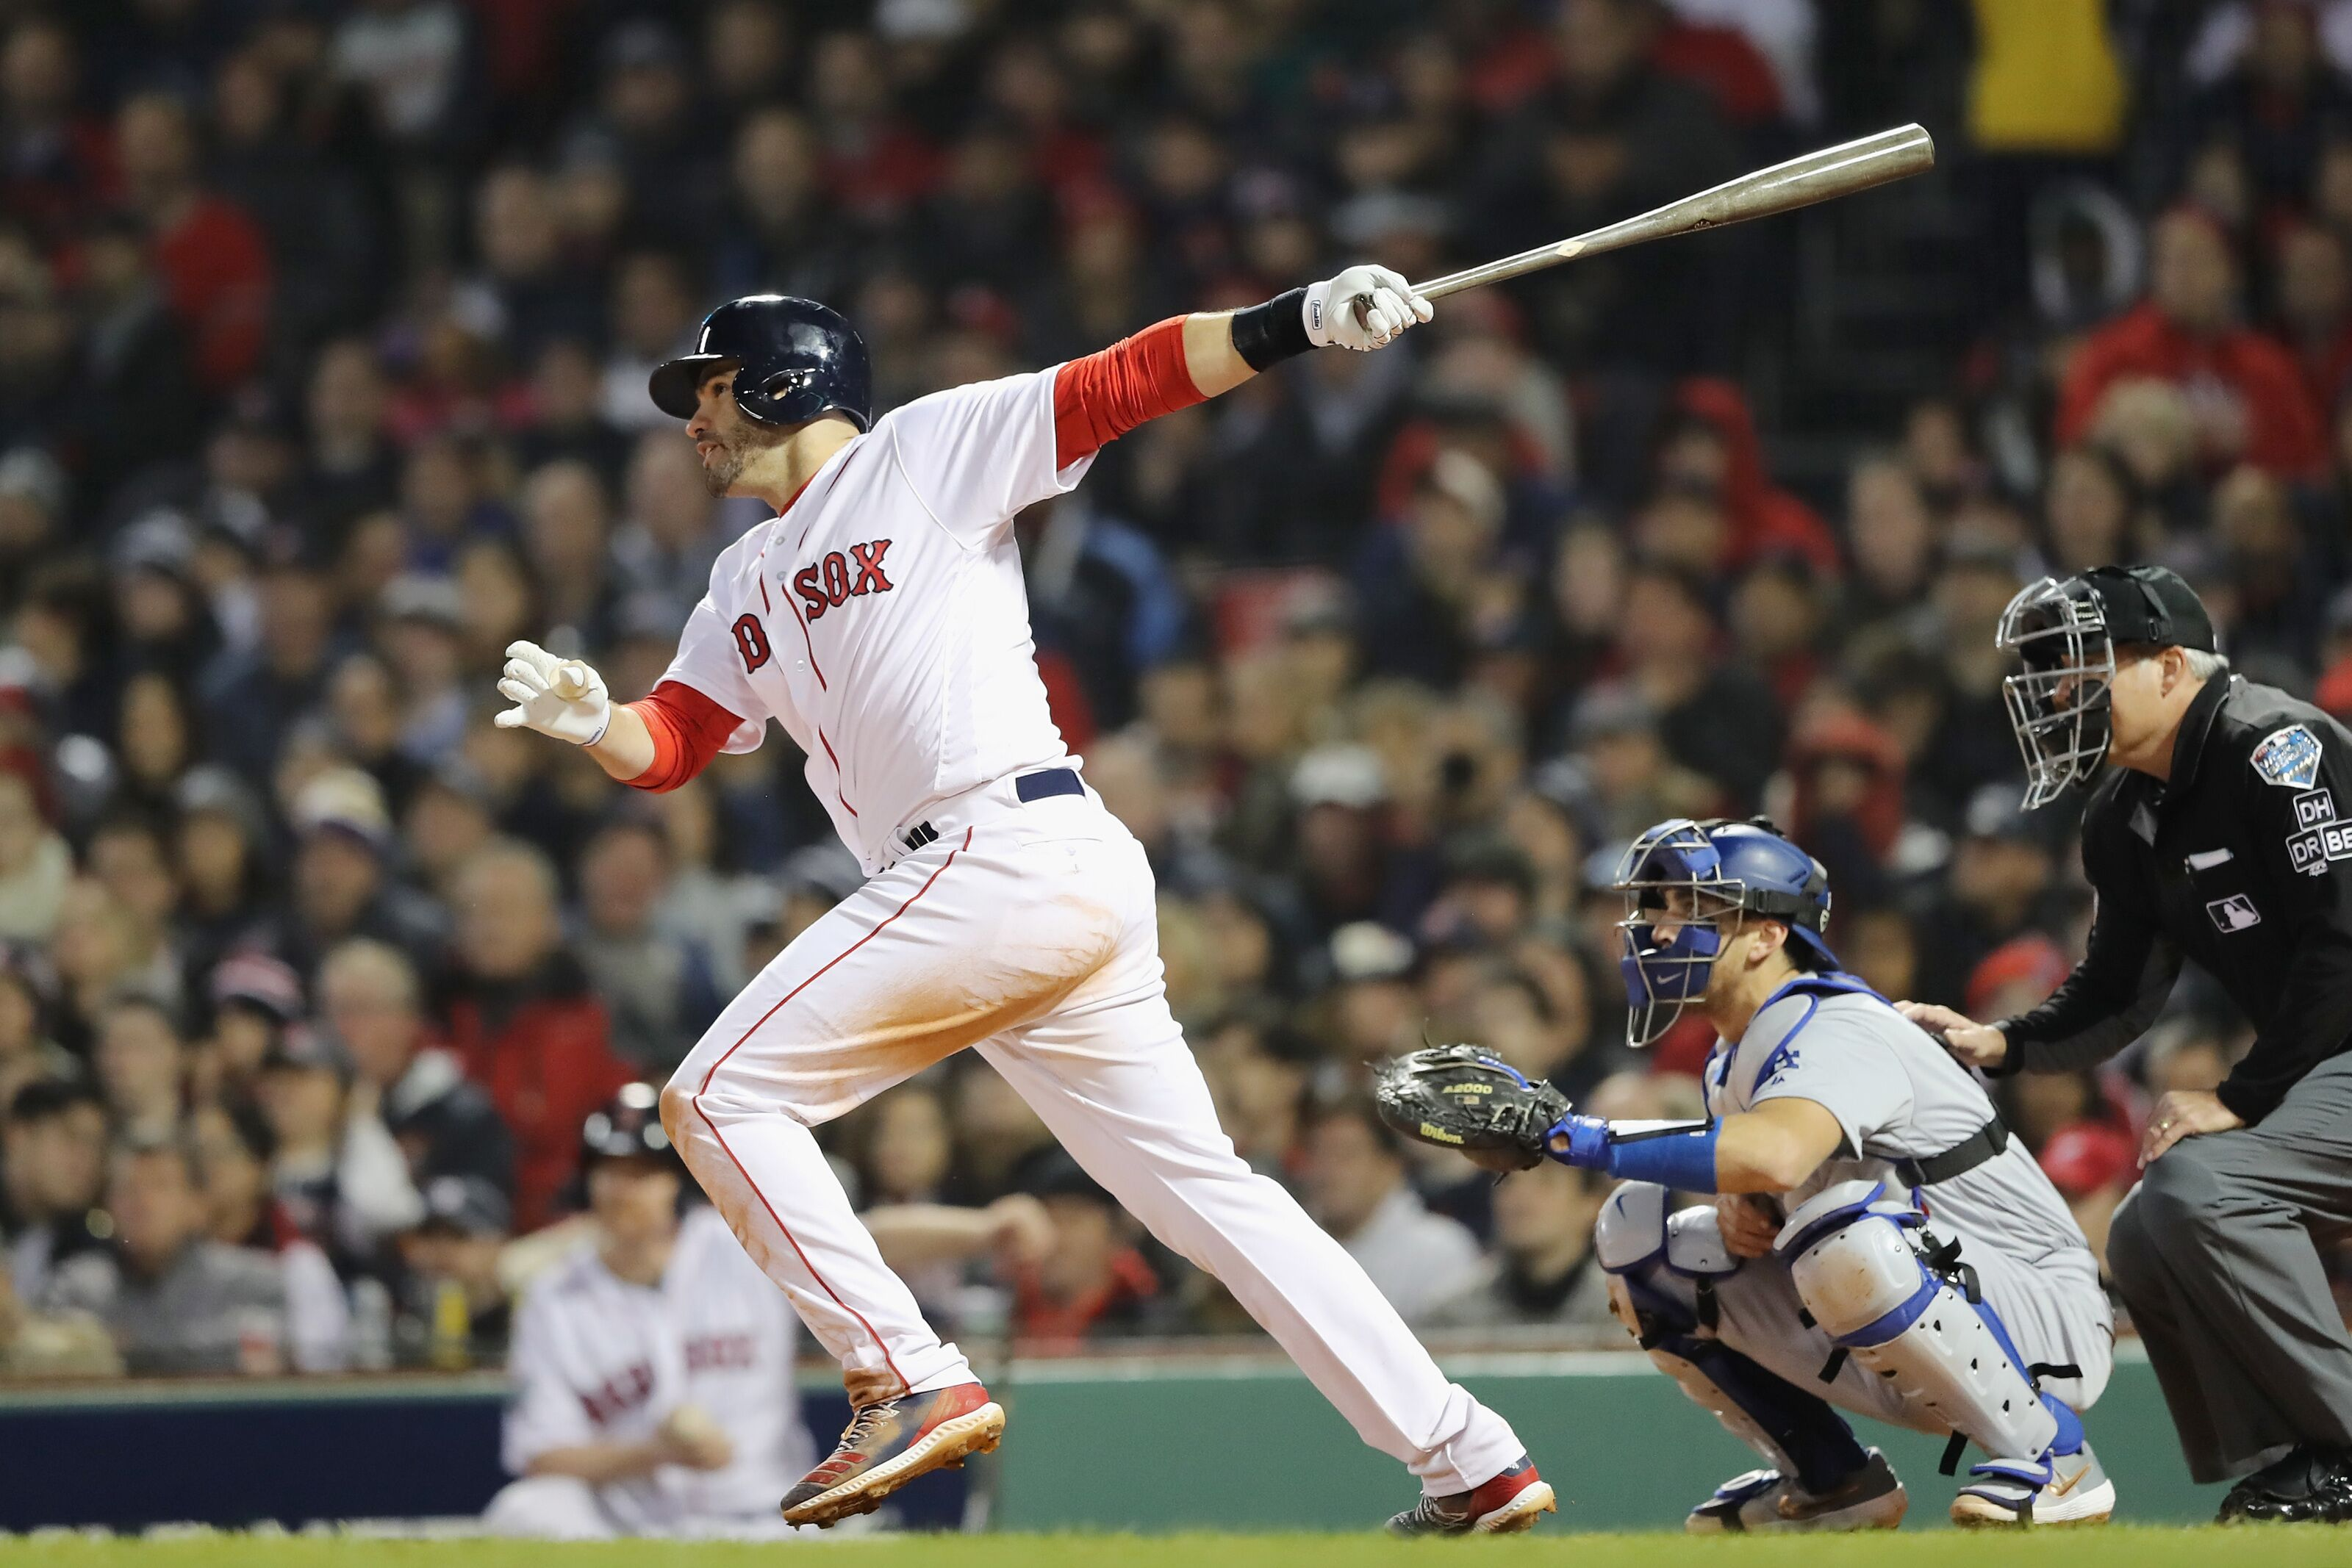 Red Sox lineup gets a boost with return of J.D. Martinez vs Astros